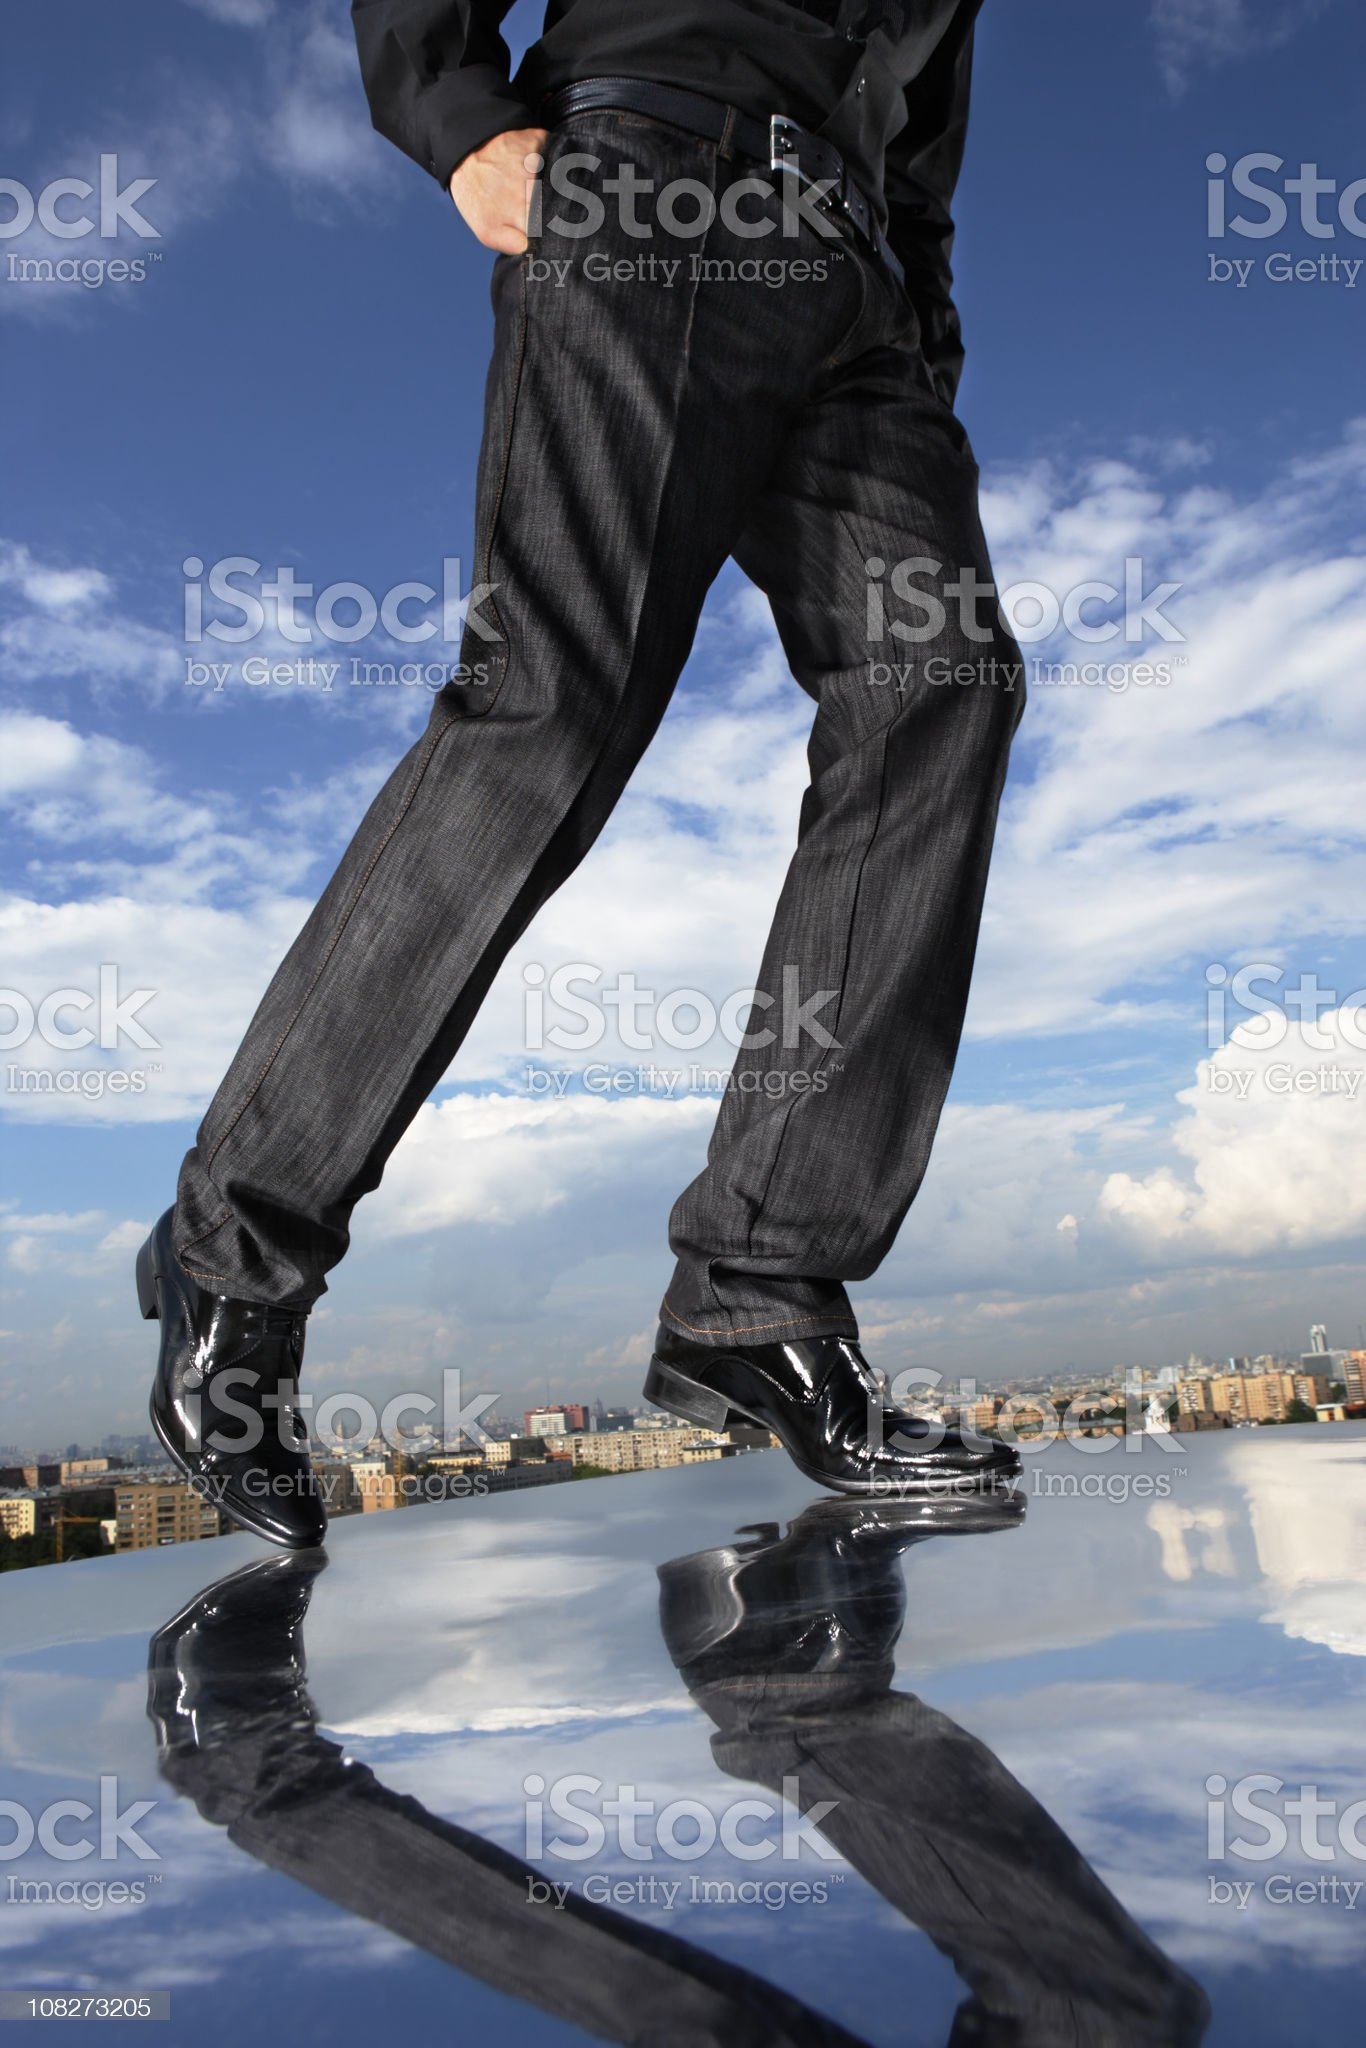 Over a city royalty-free stock photo